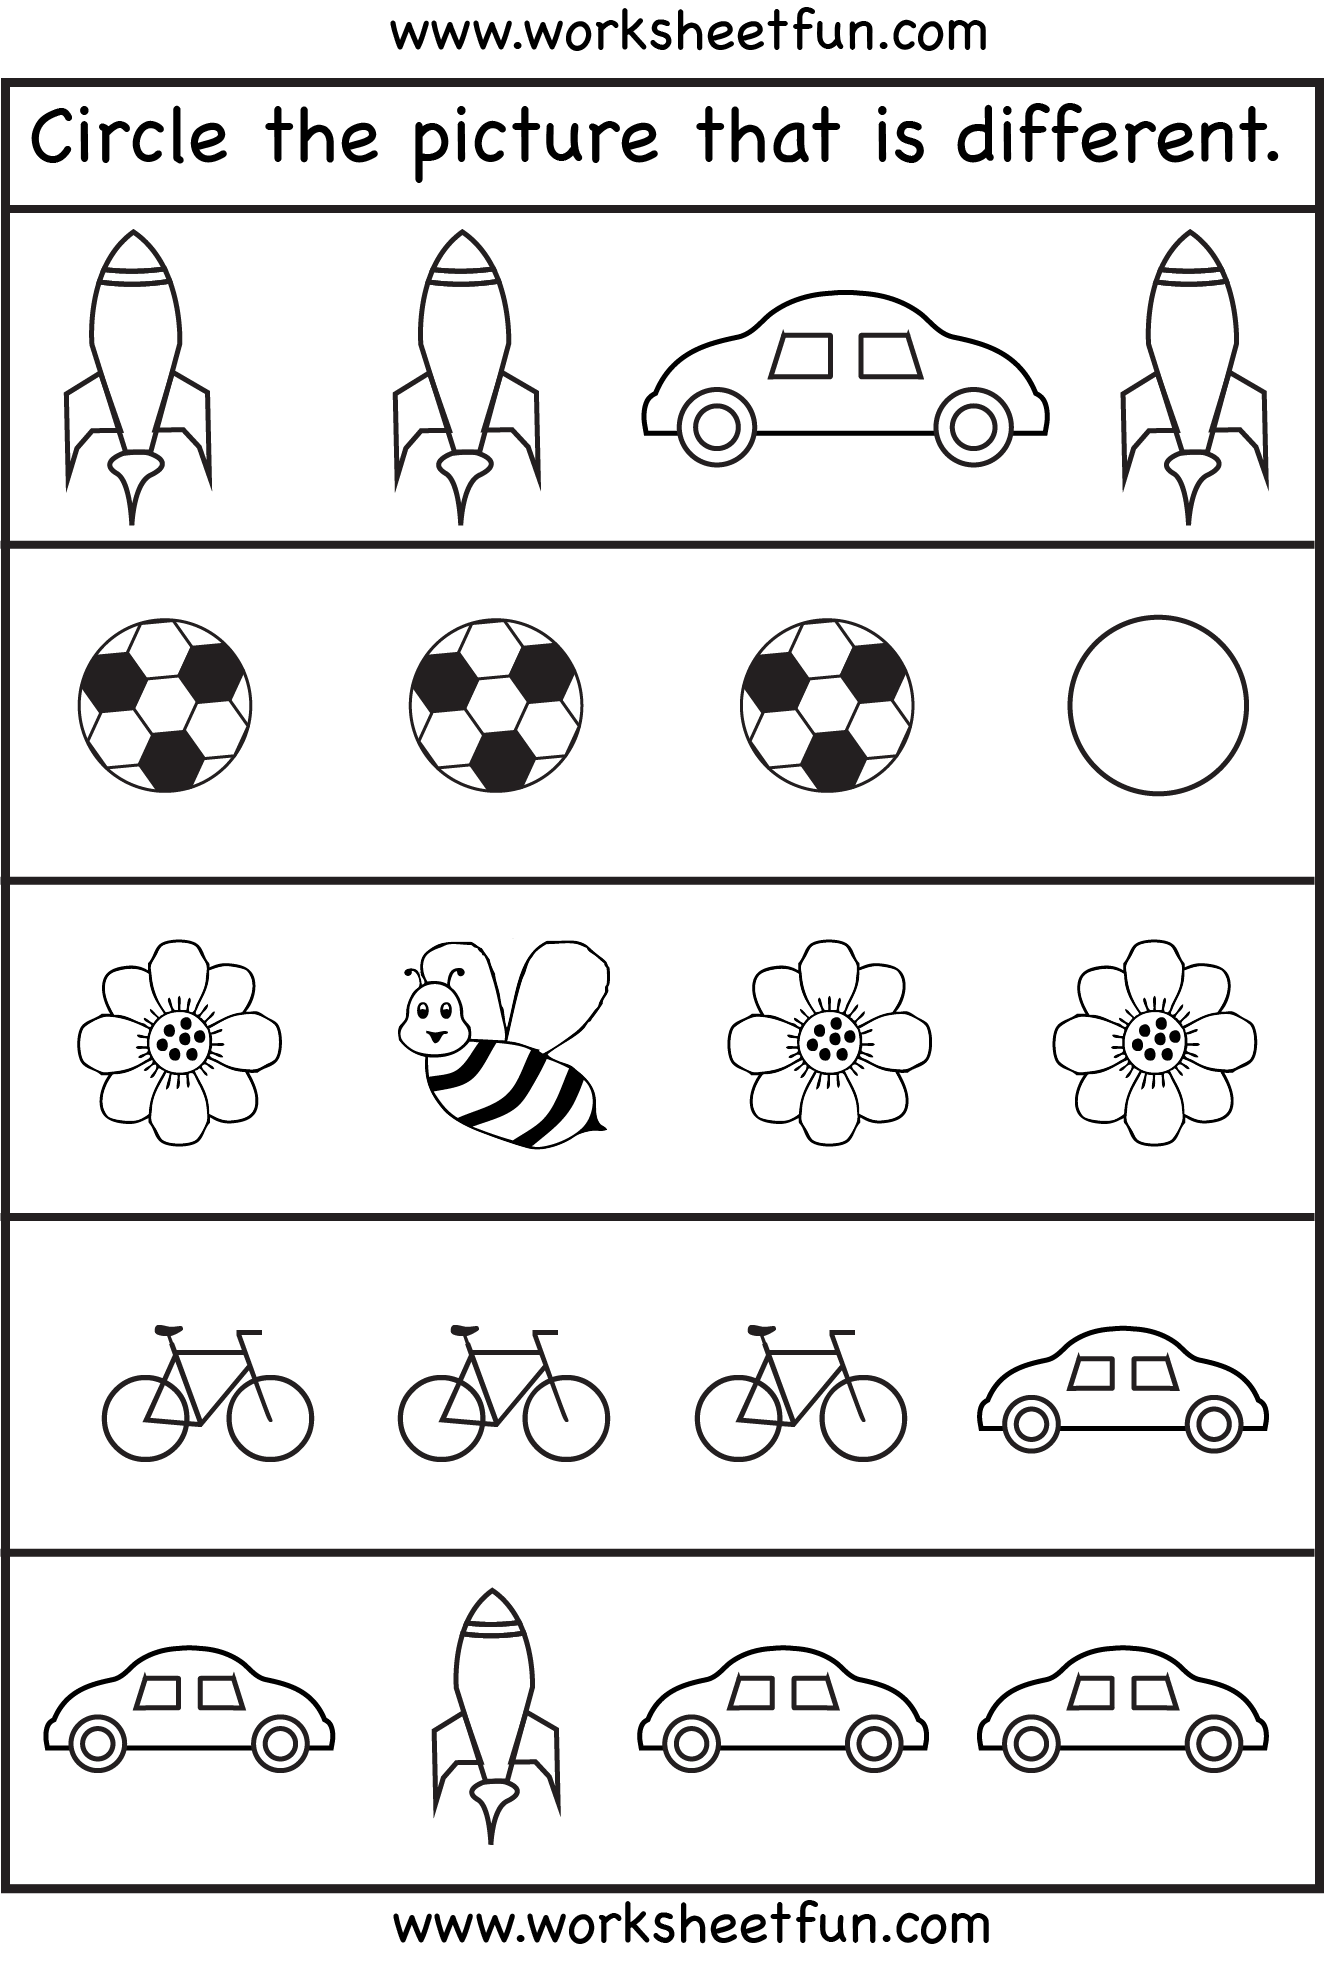 Circle the picture that is different worksheets language activitieslearning activities year old also best learning images on pinterest diy activities and childhood rh